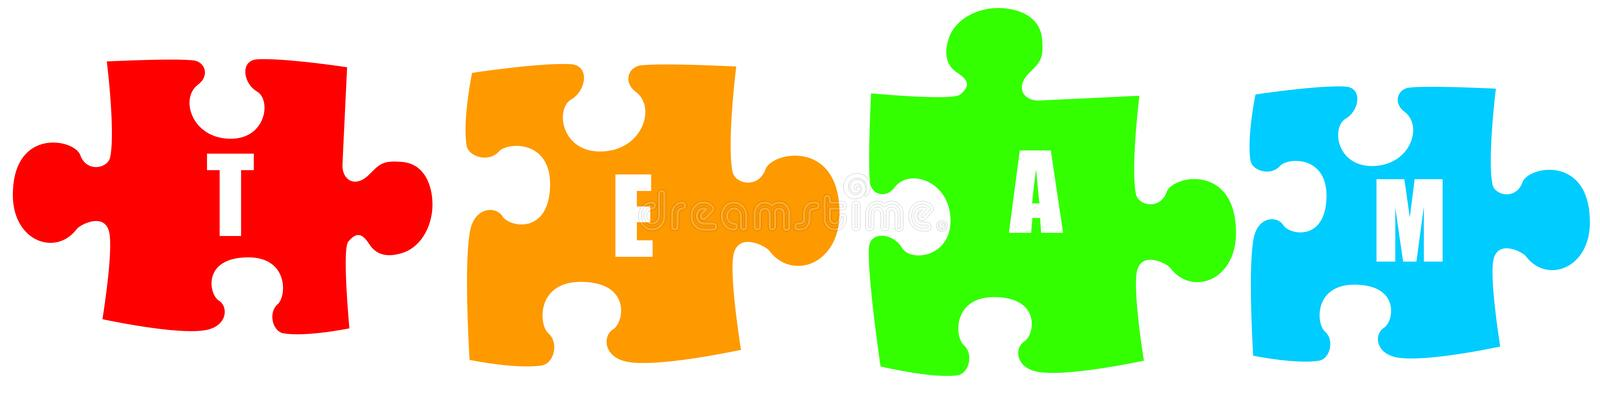 Team Puzzle Royalty Free Stock Photography